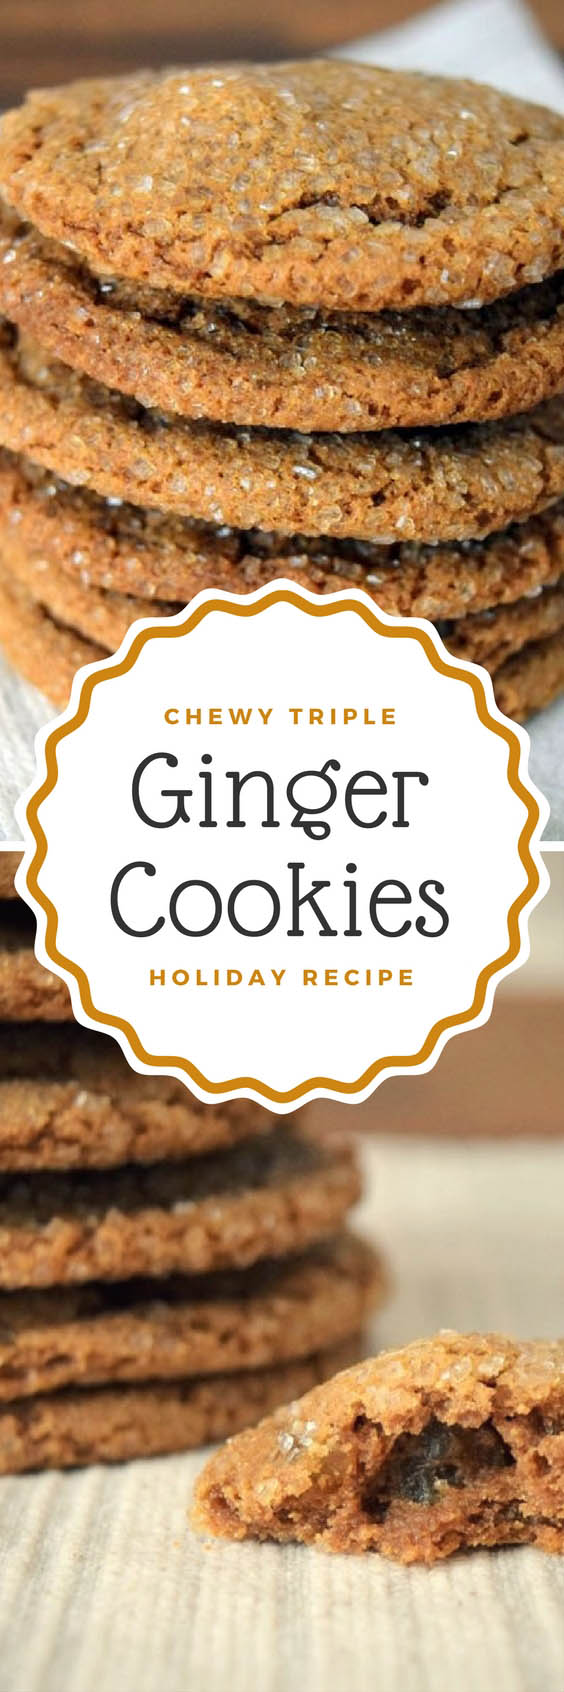 Chewy Triple Ginger Cookies - Pin 1